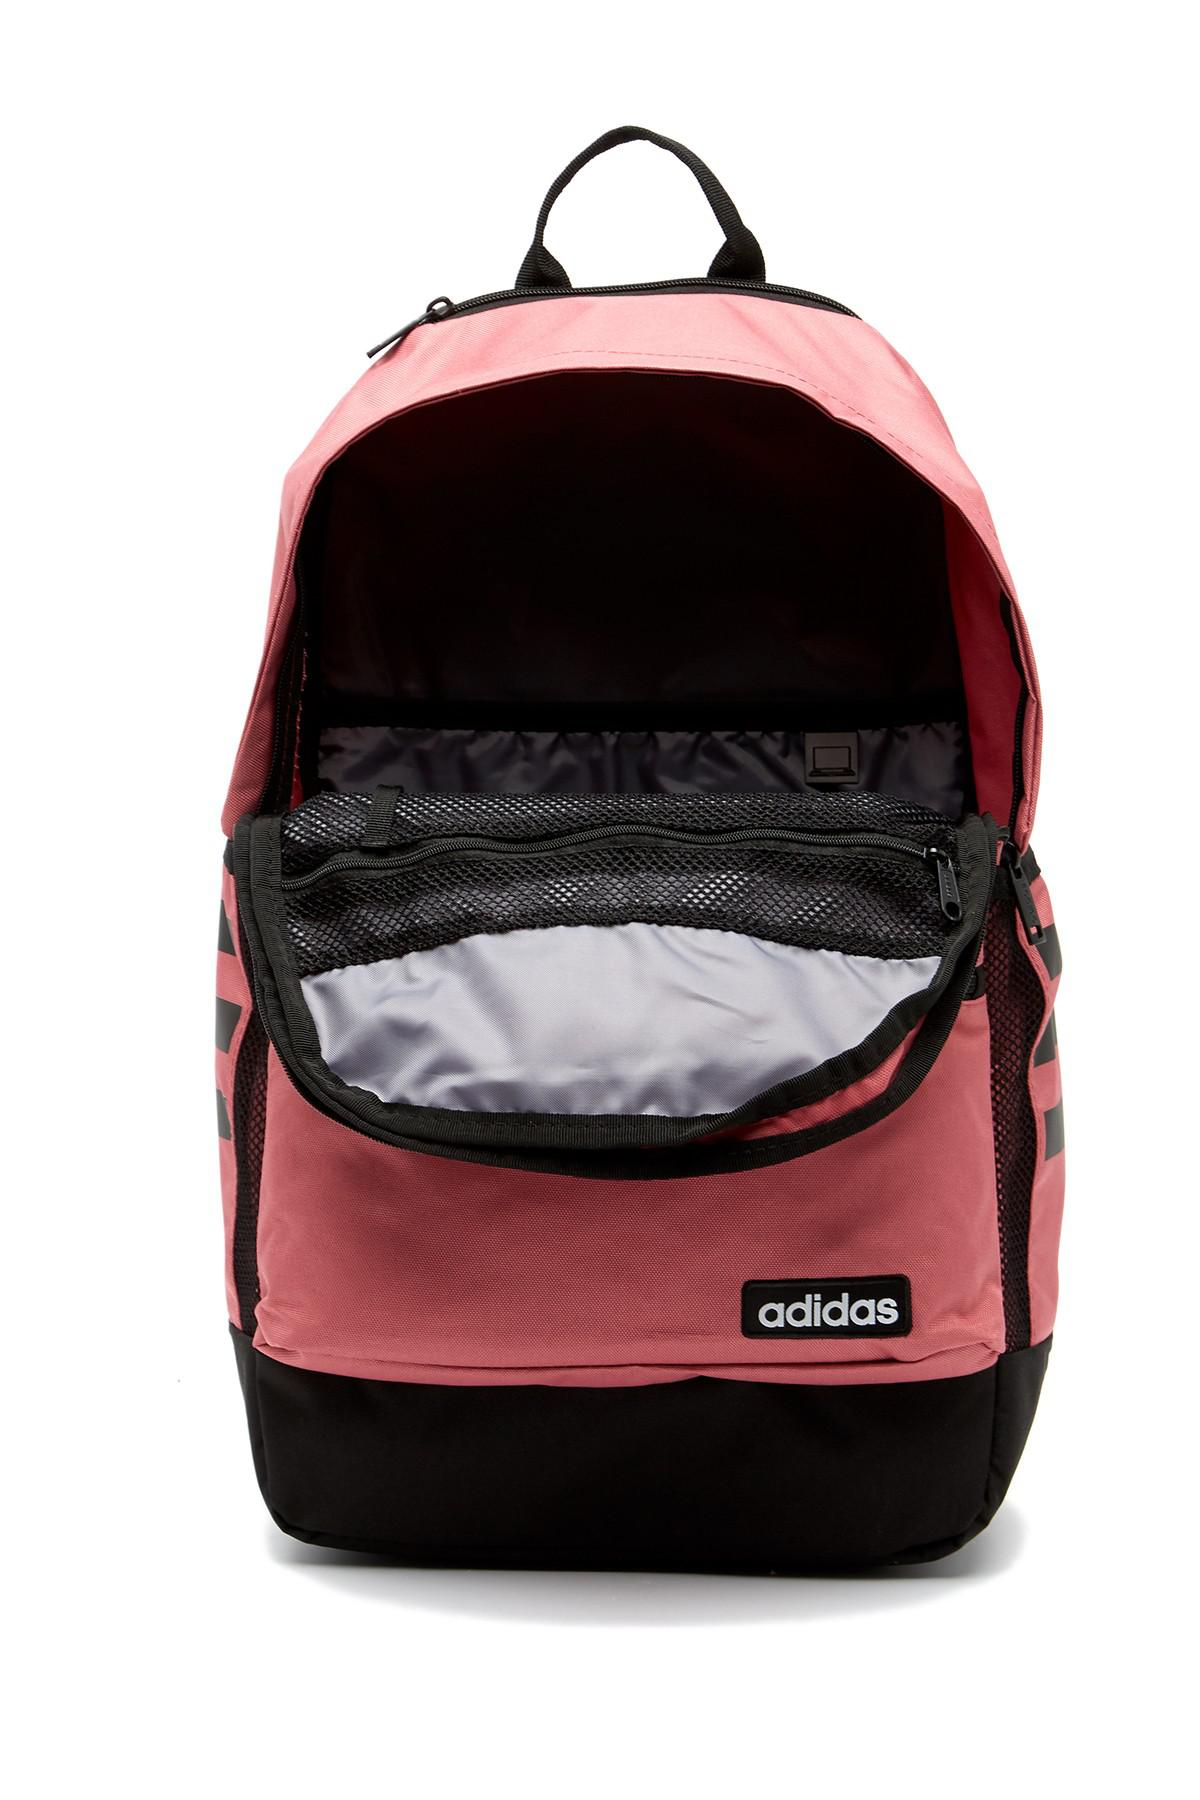 e263571a4e70 Lyst - adidas Classic 3s Ii Backpack in Pink for Men